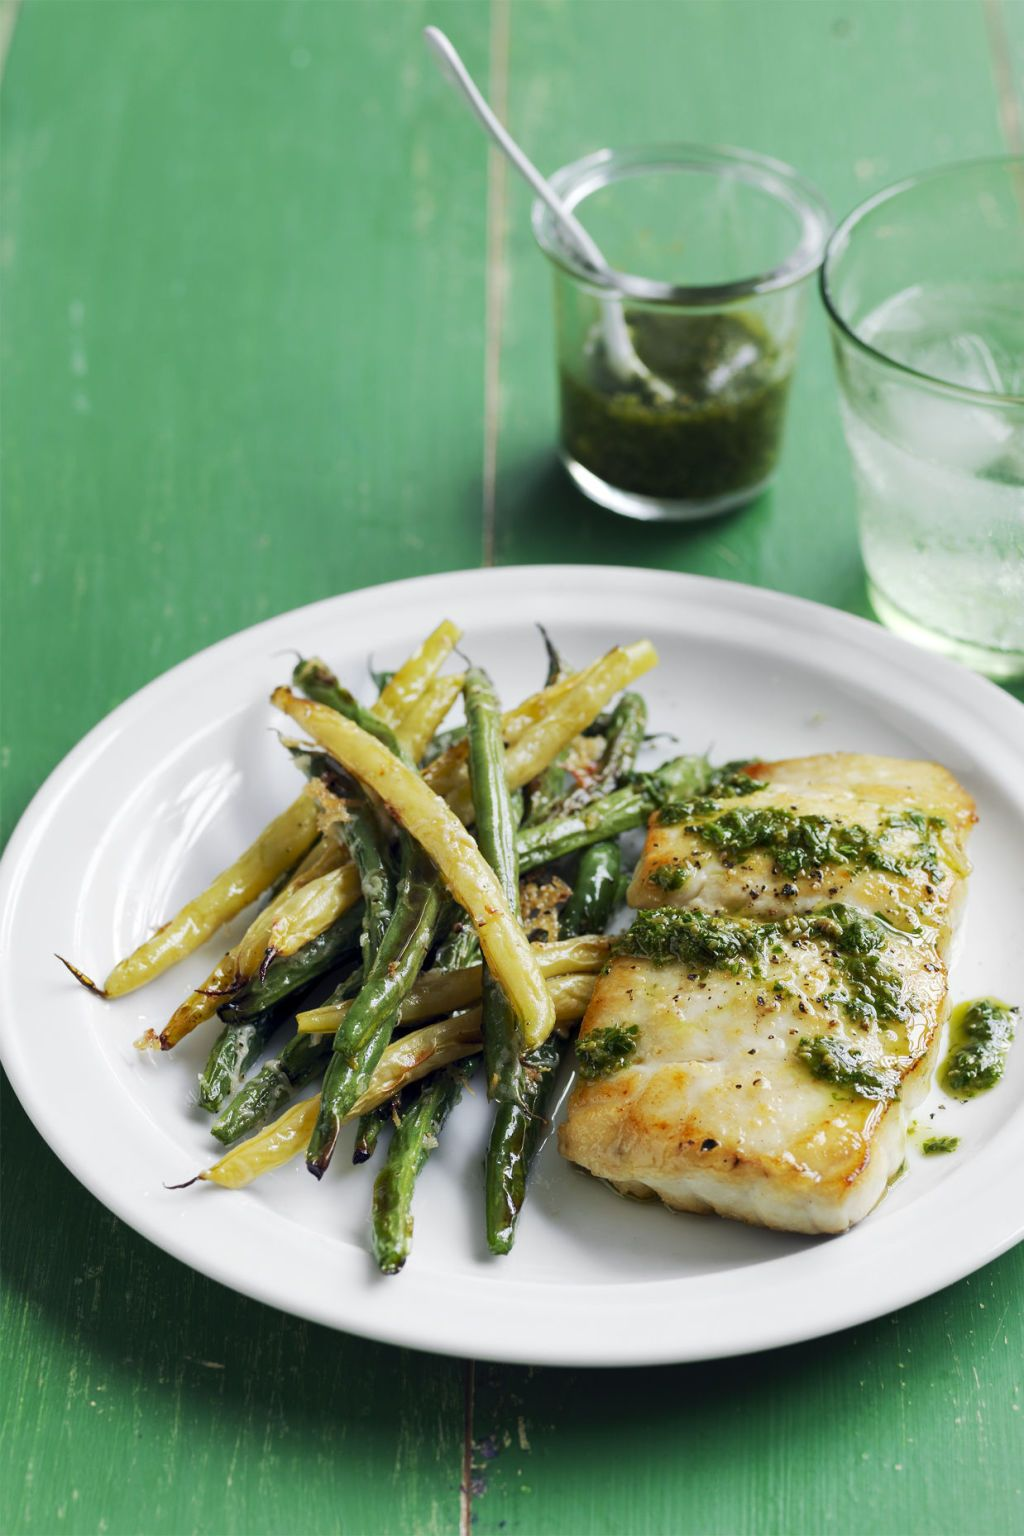 Change to pesto cod with olive oil Parmesan asparagus